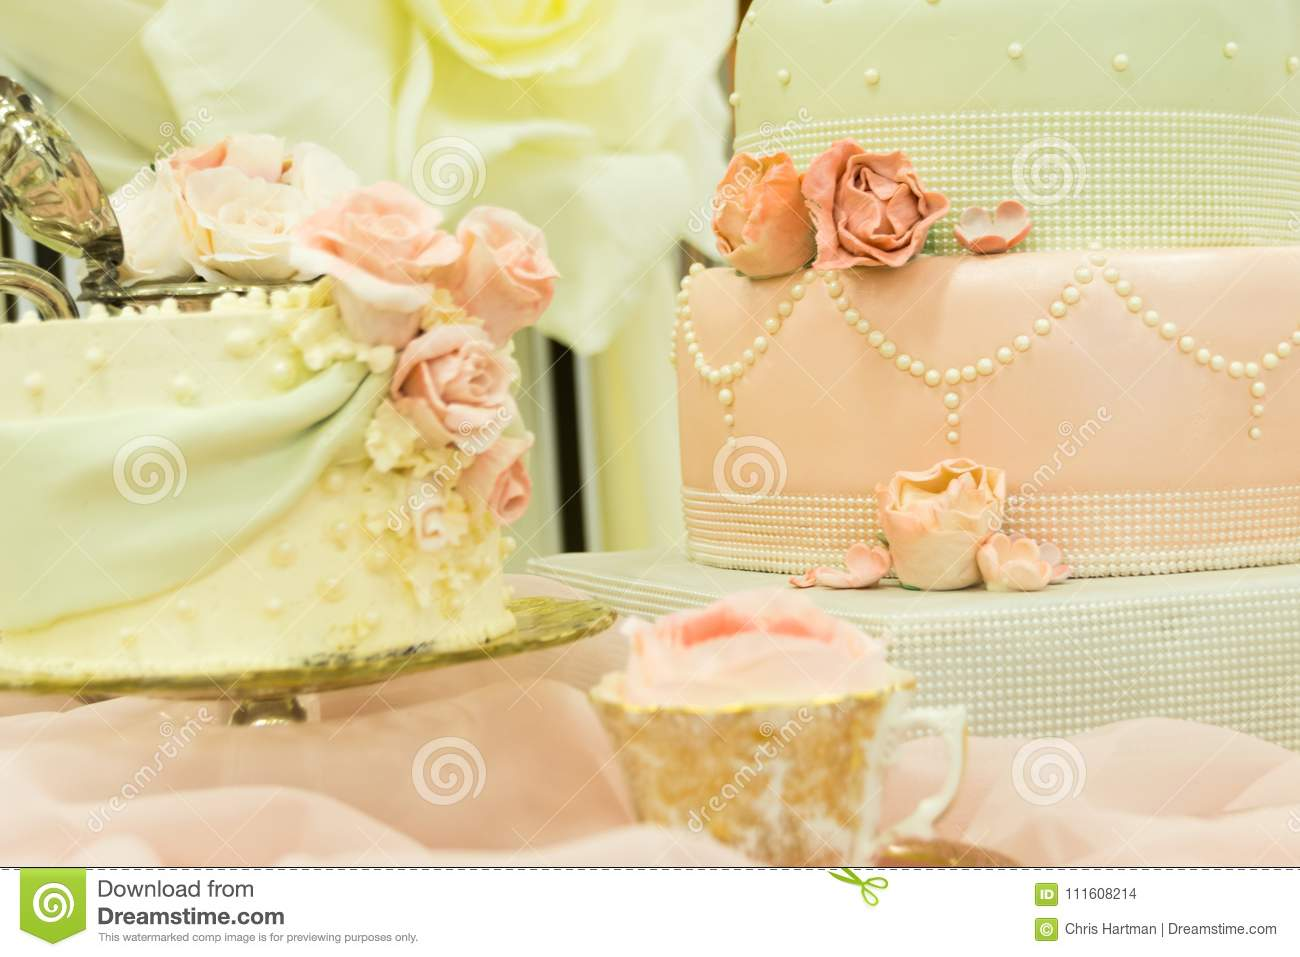 A Fancy Wedding Cake Display Table Stock Photo - Image of details ...